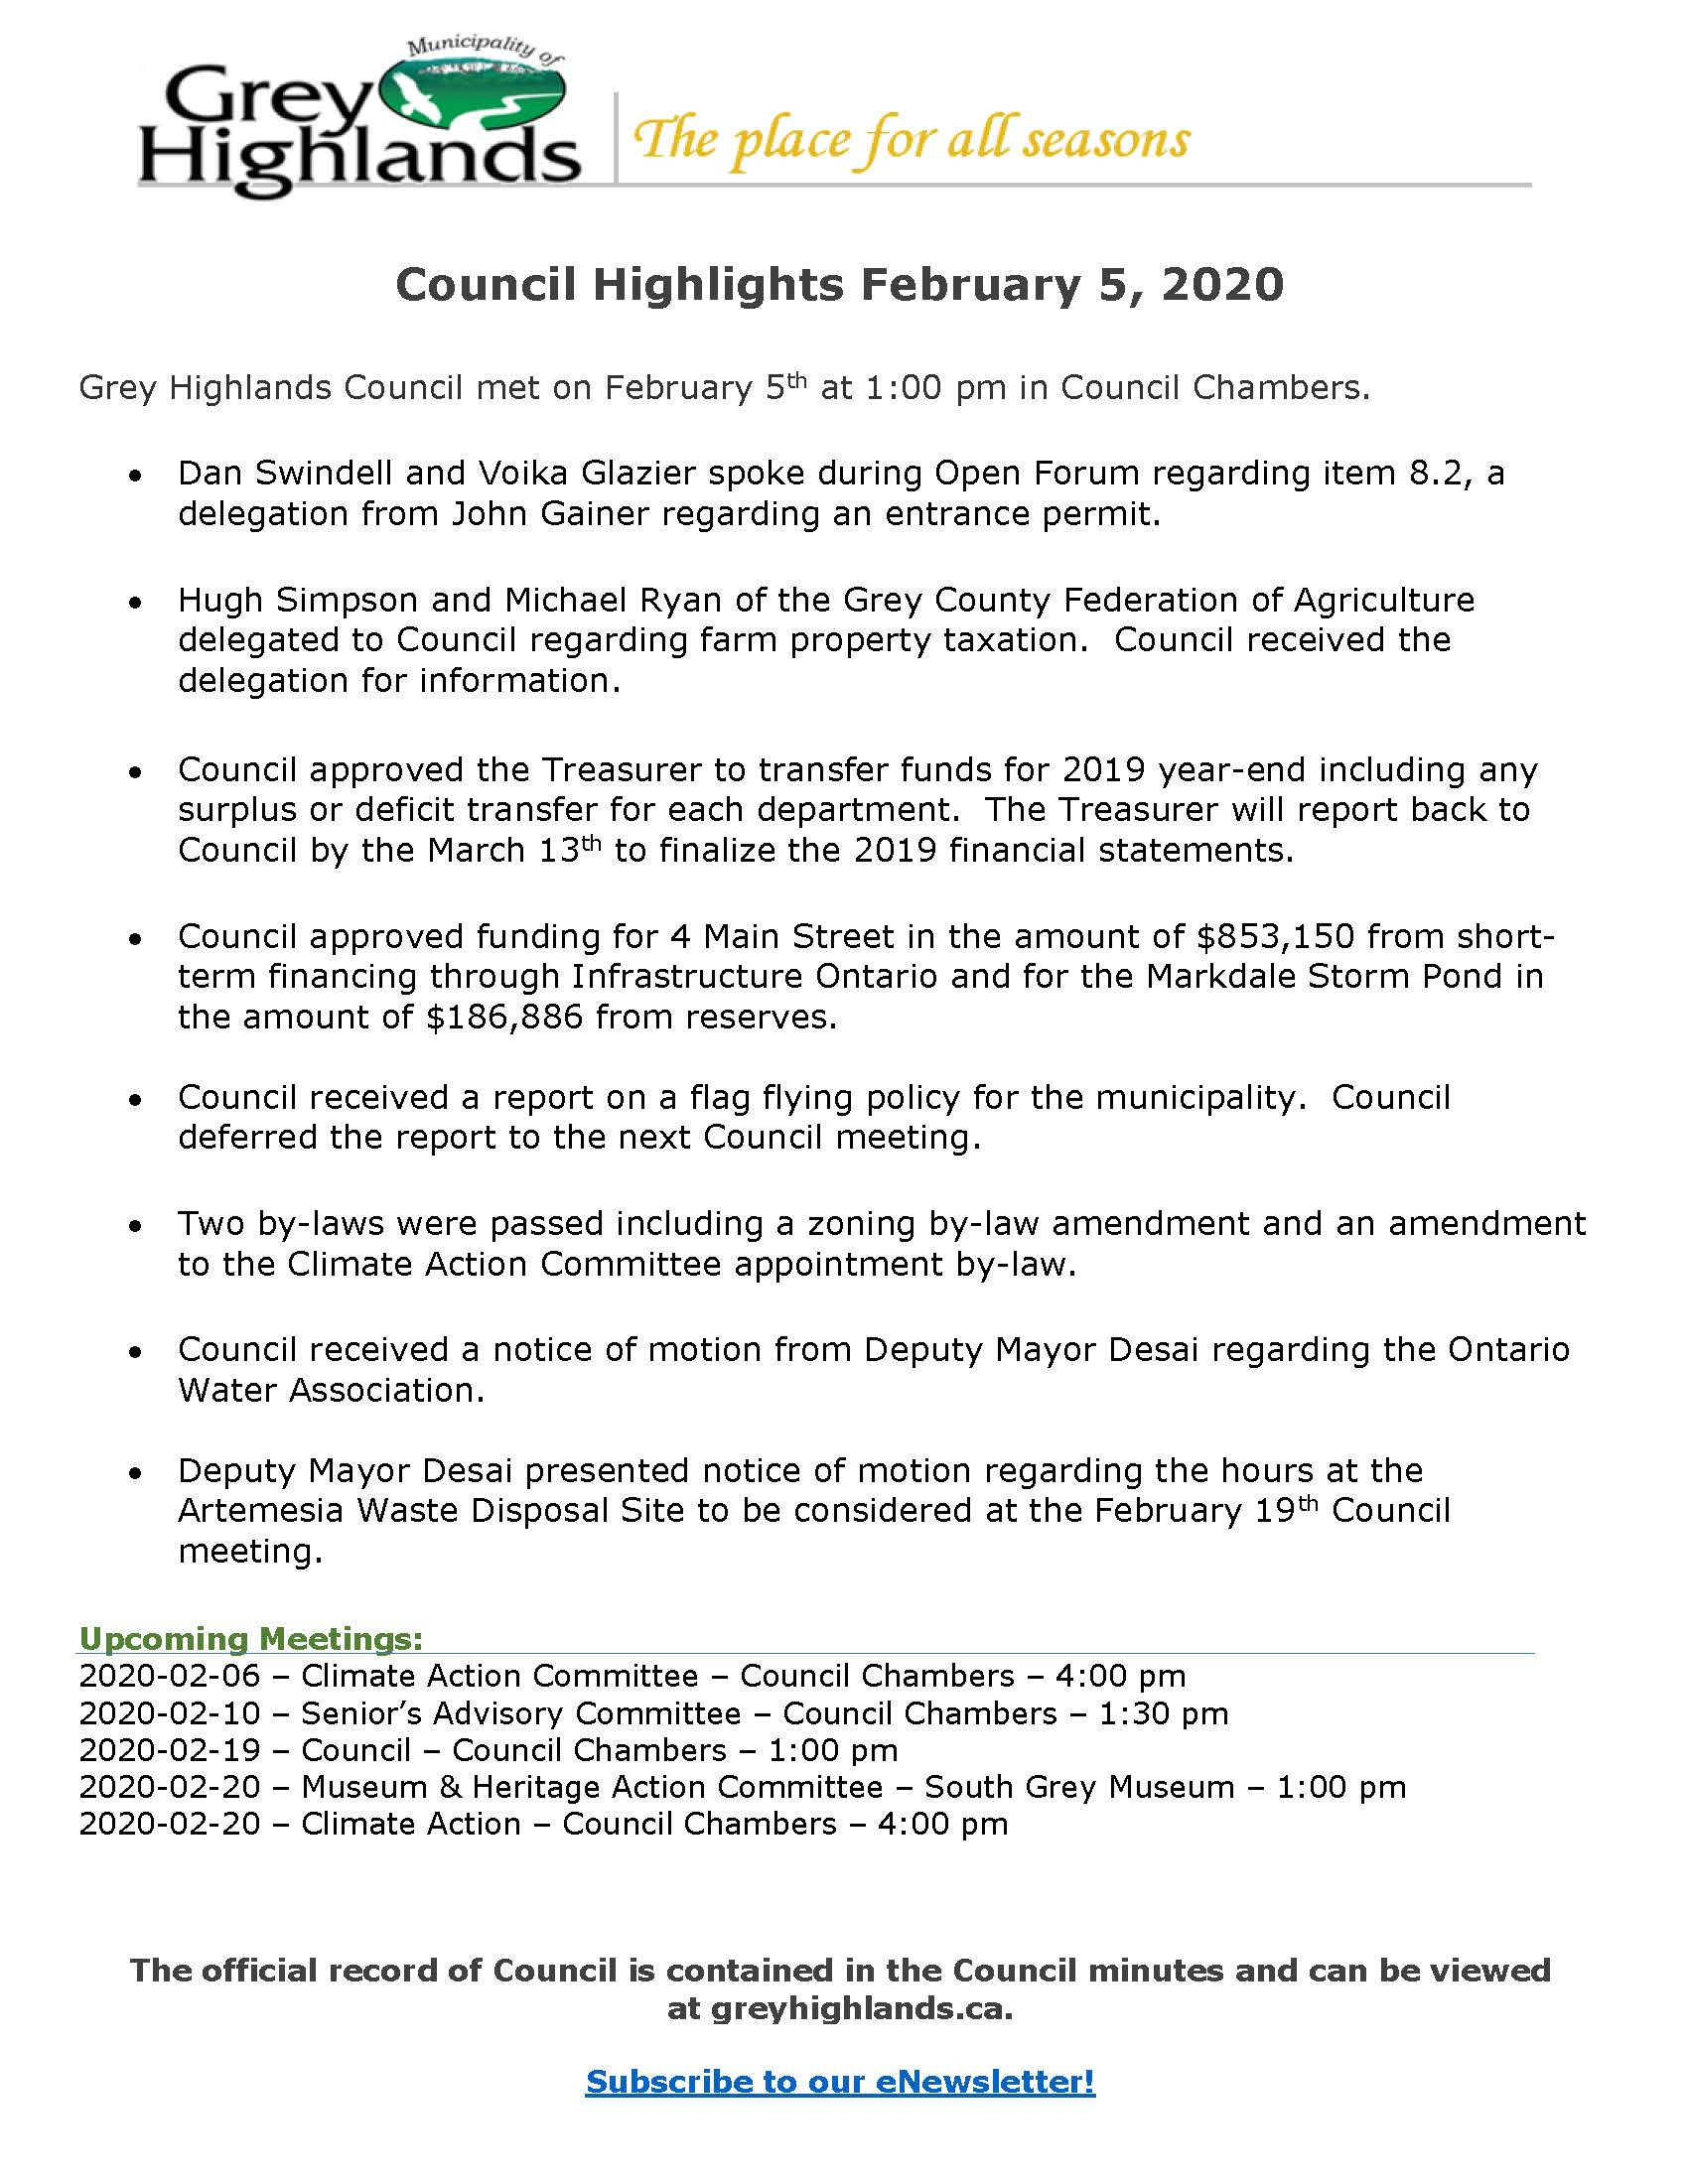 Council Highlights Feb 5